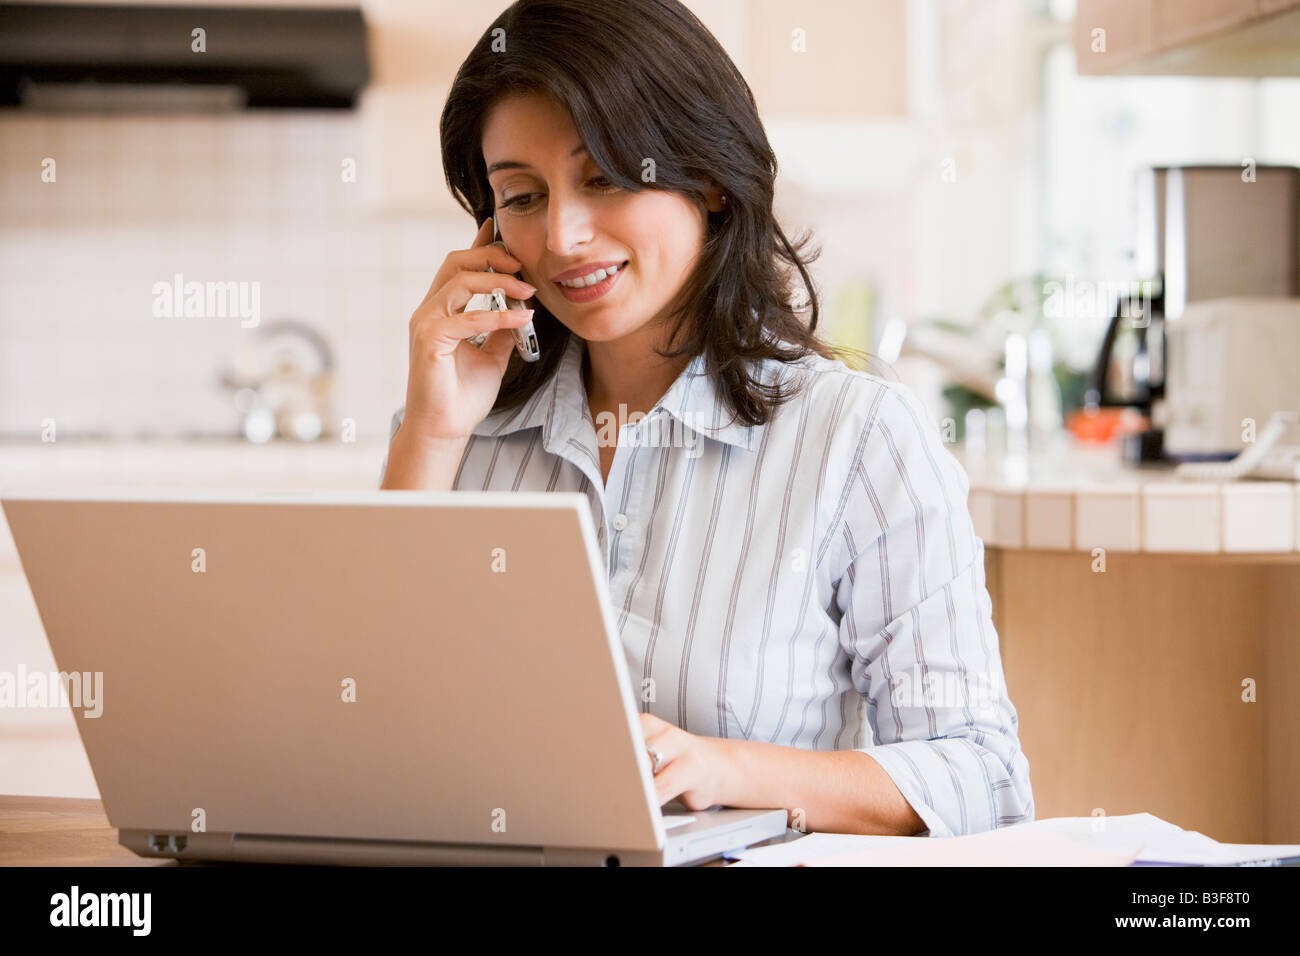 Woman in kitchen with laptop using cellular phone smiling - Stock Image